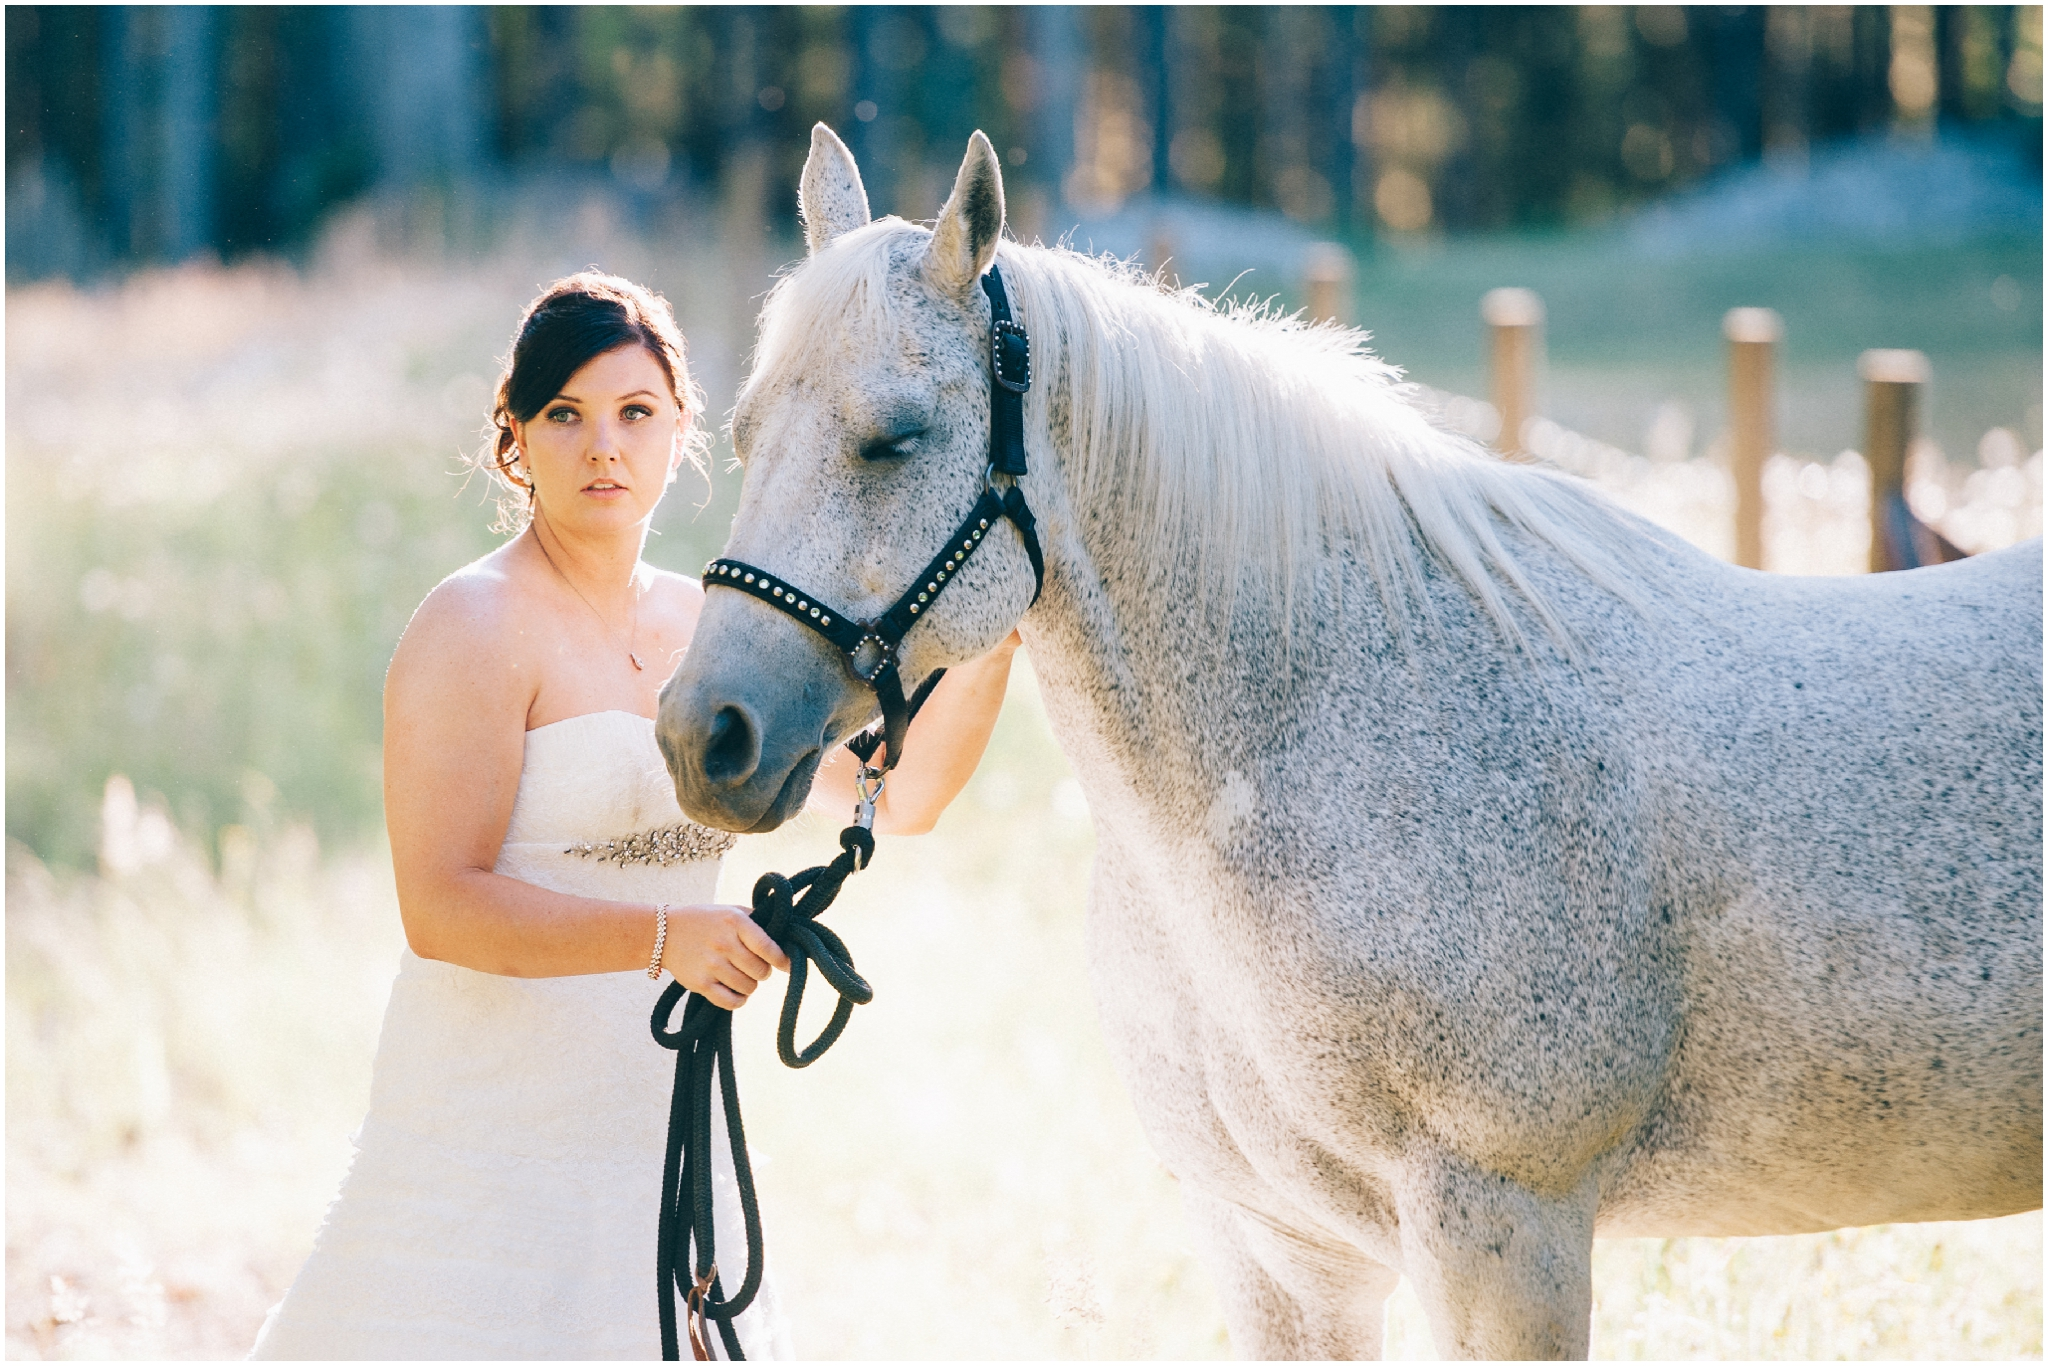 Bride Wedding Photo standing next to a horse by Ardita Kola Photography